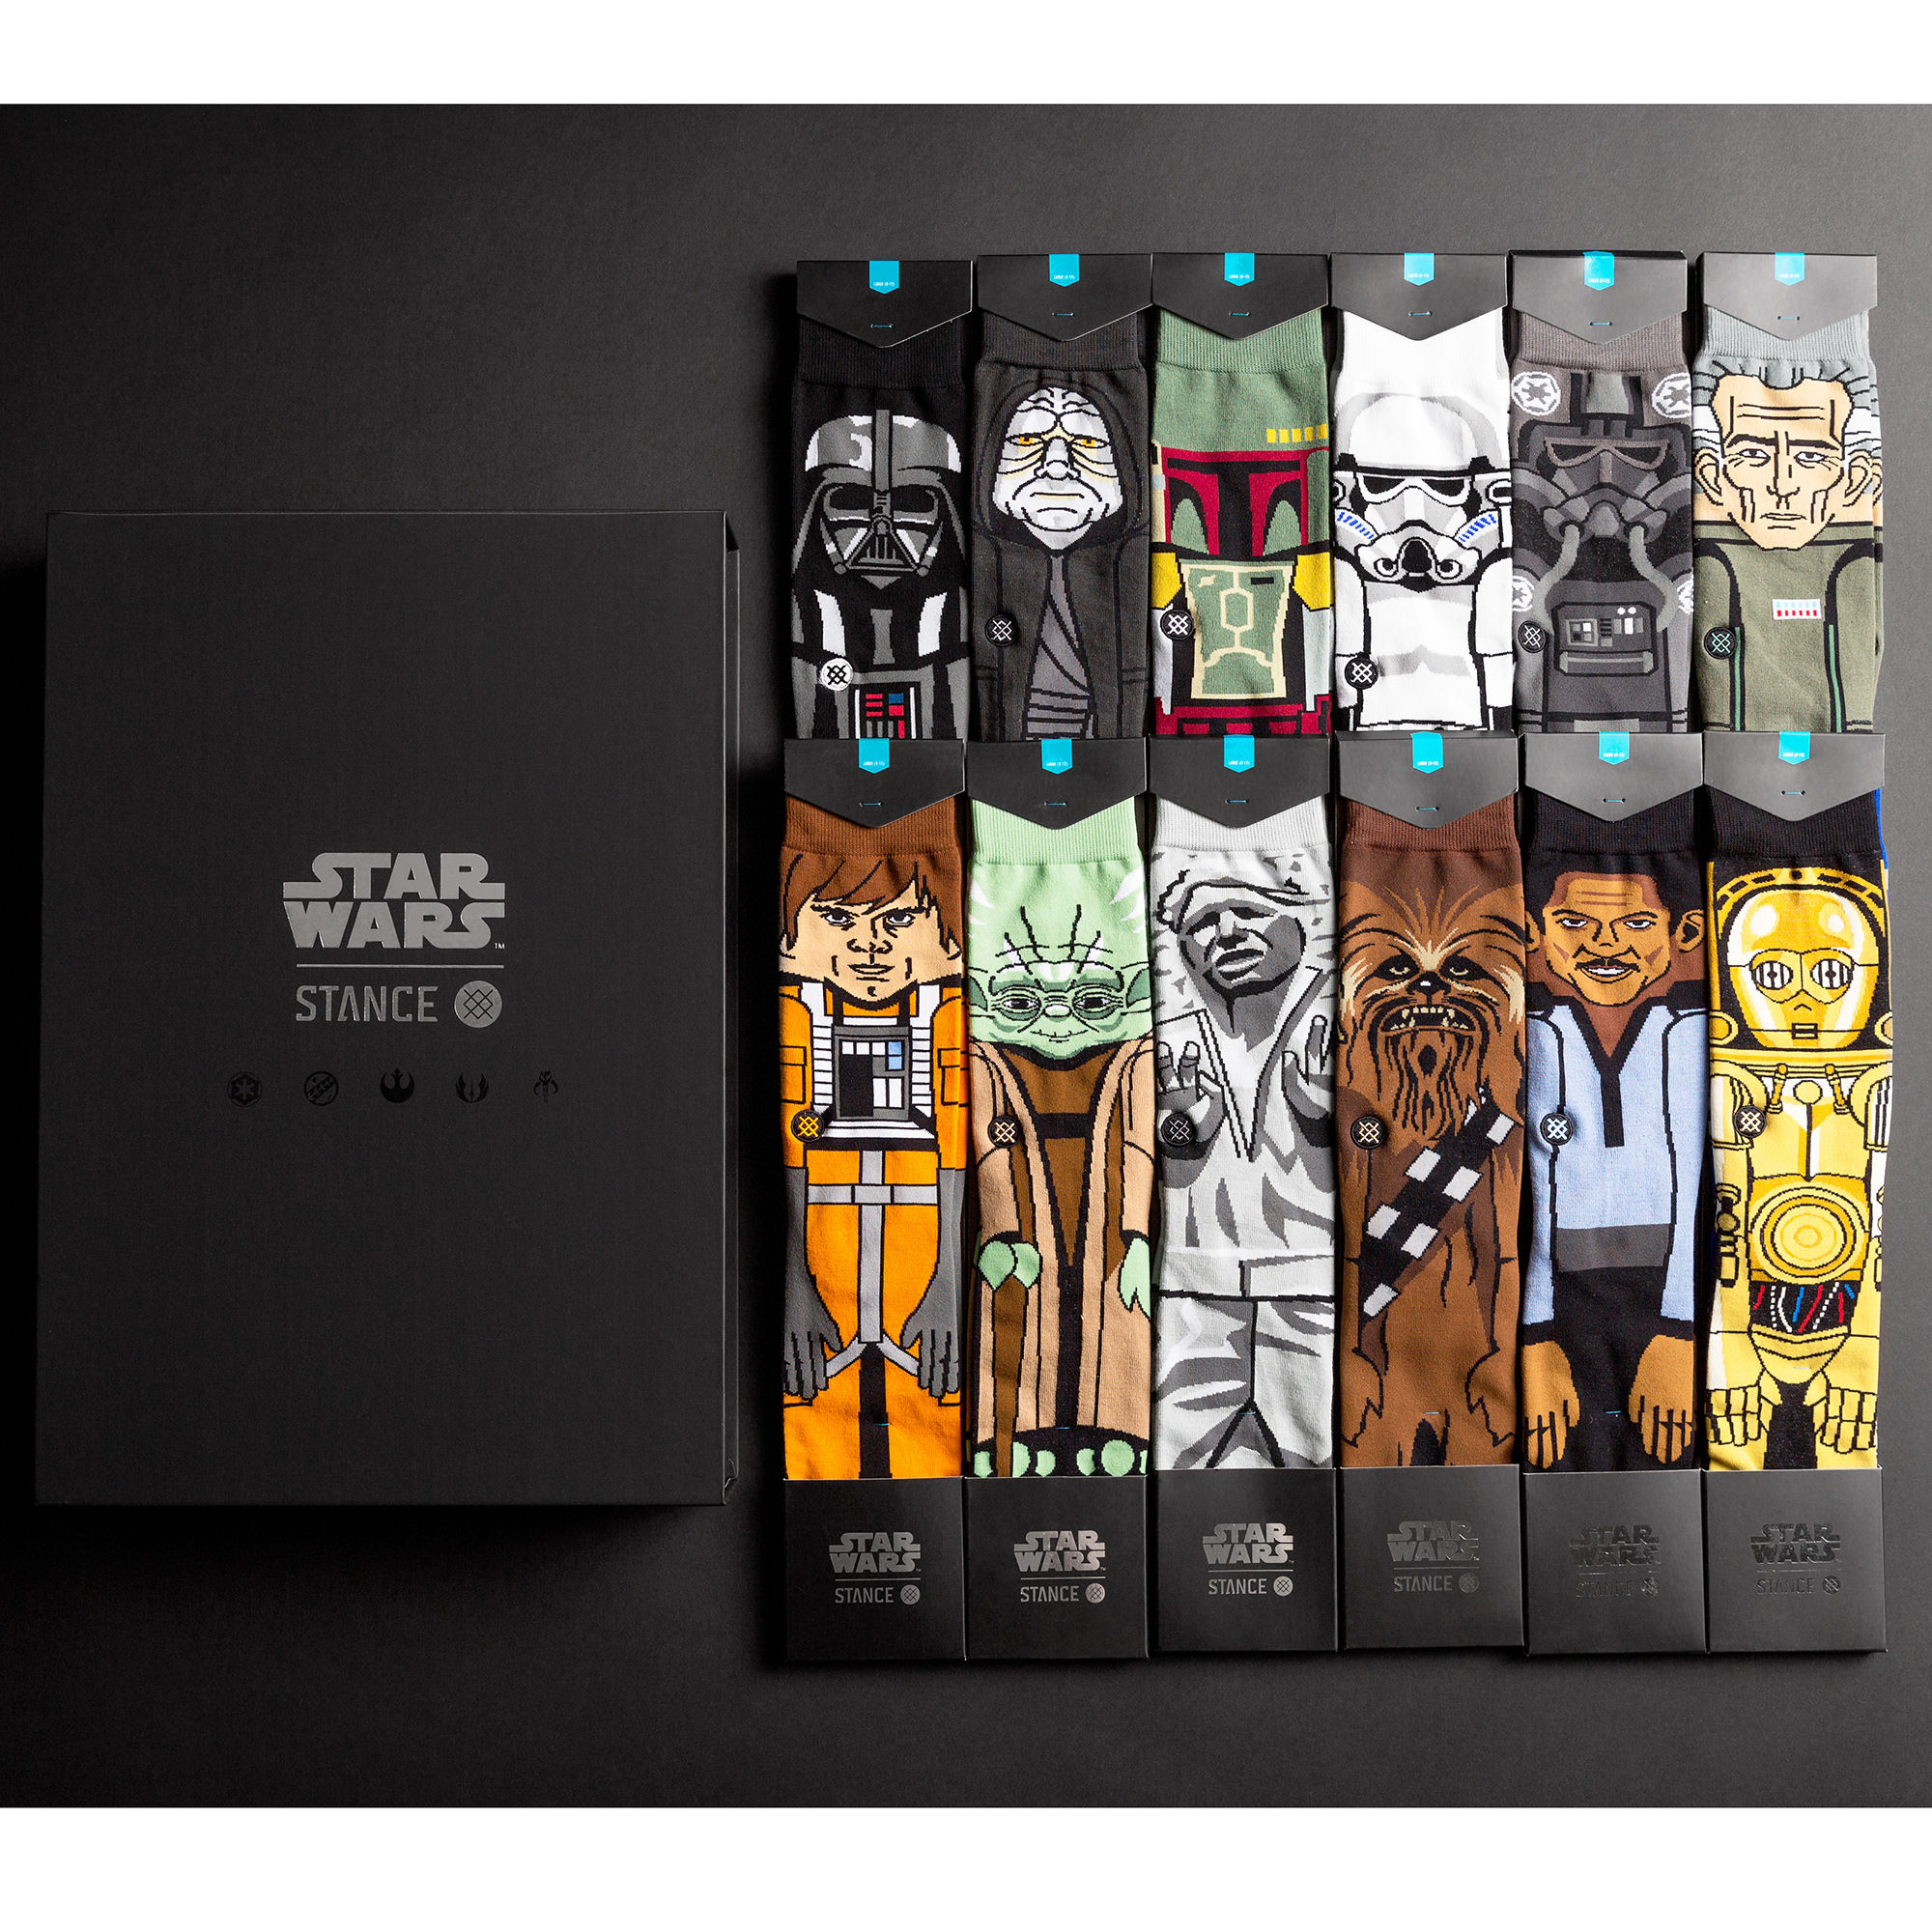 Stance x Star Wars Socks 12 Pack Gift Box The Force 2 Size L Movie Sox Set